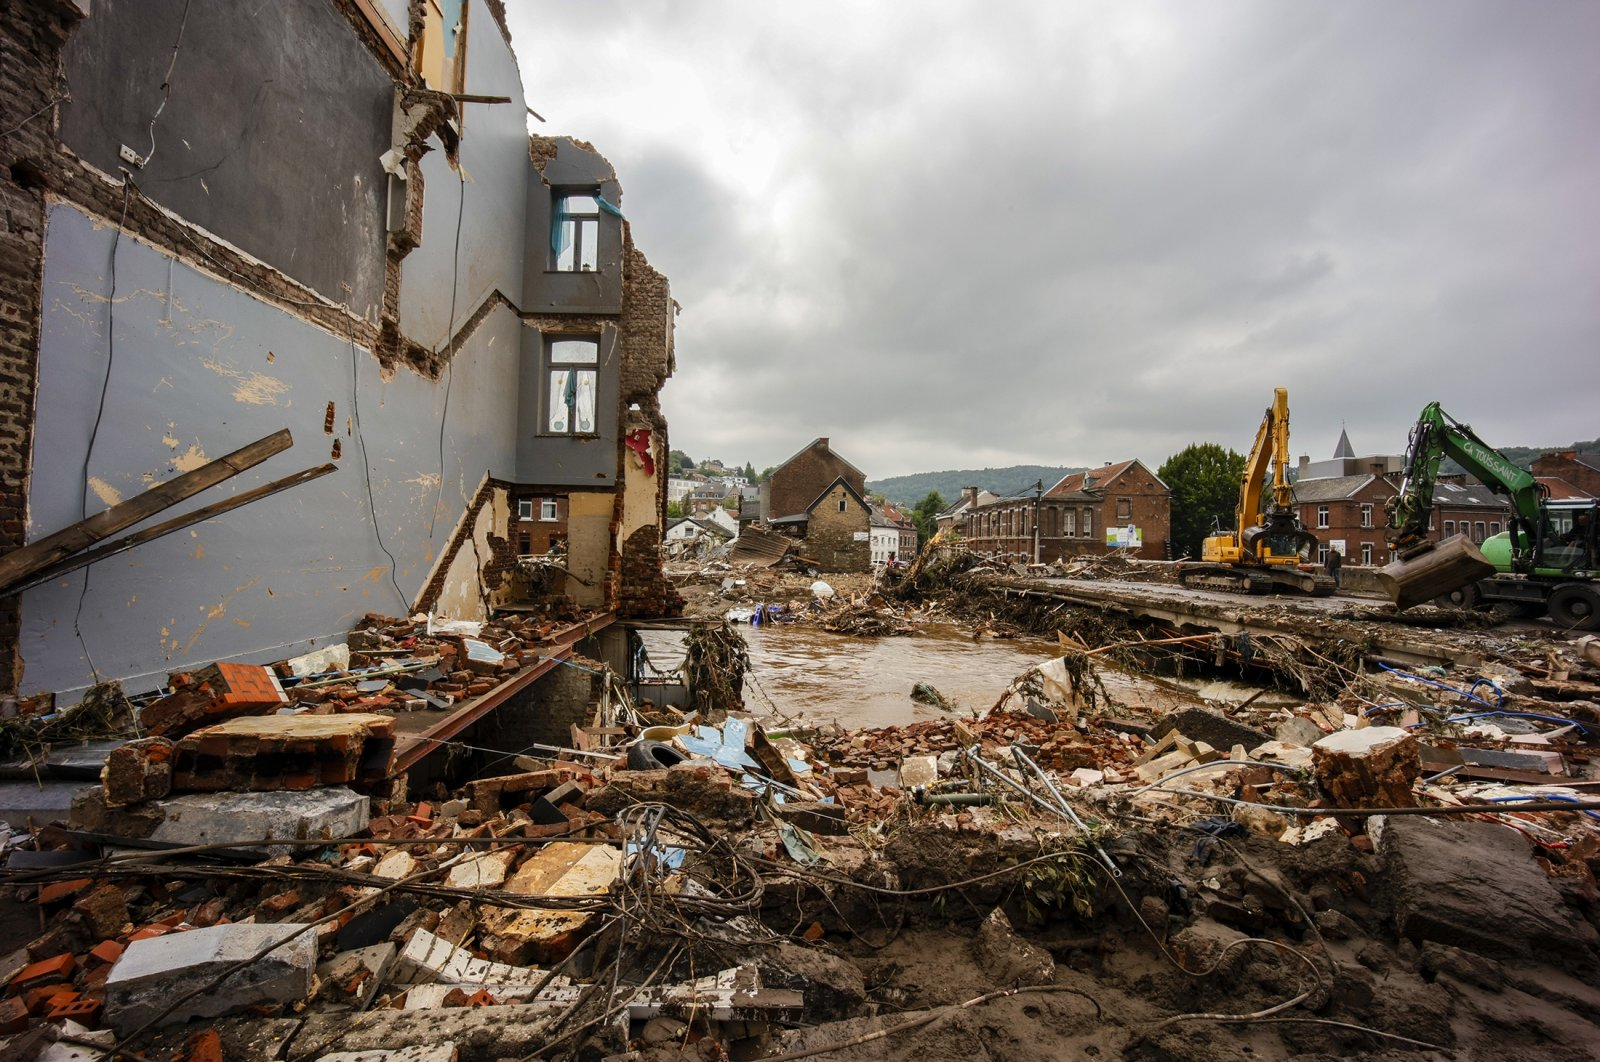 A general view of the destruction following severe flooding after heavy rainfall on July 17, 2021 in Pepinster, Belgium. (Getty Images)